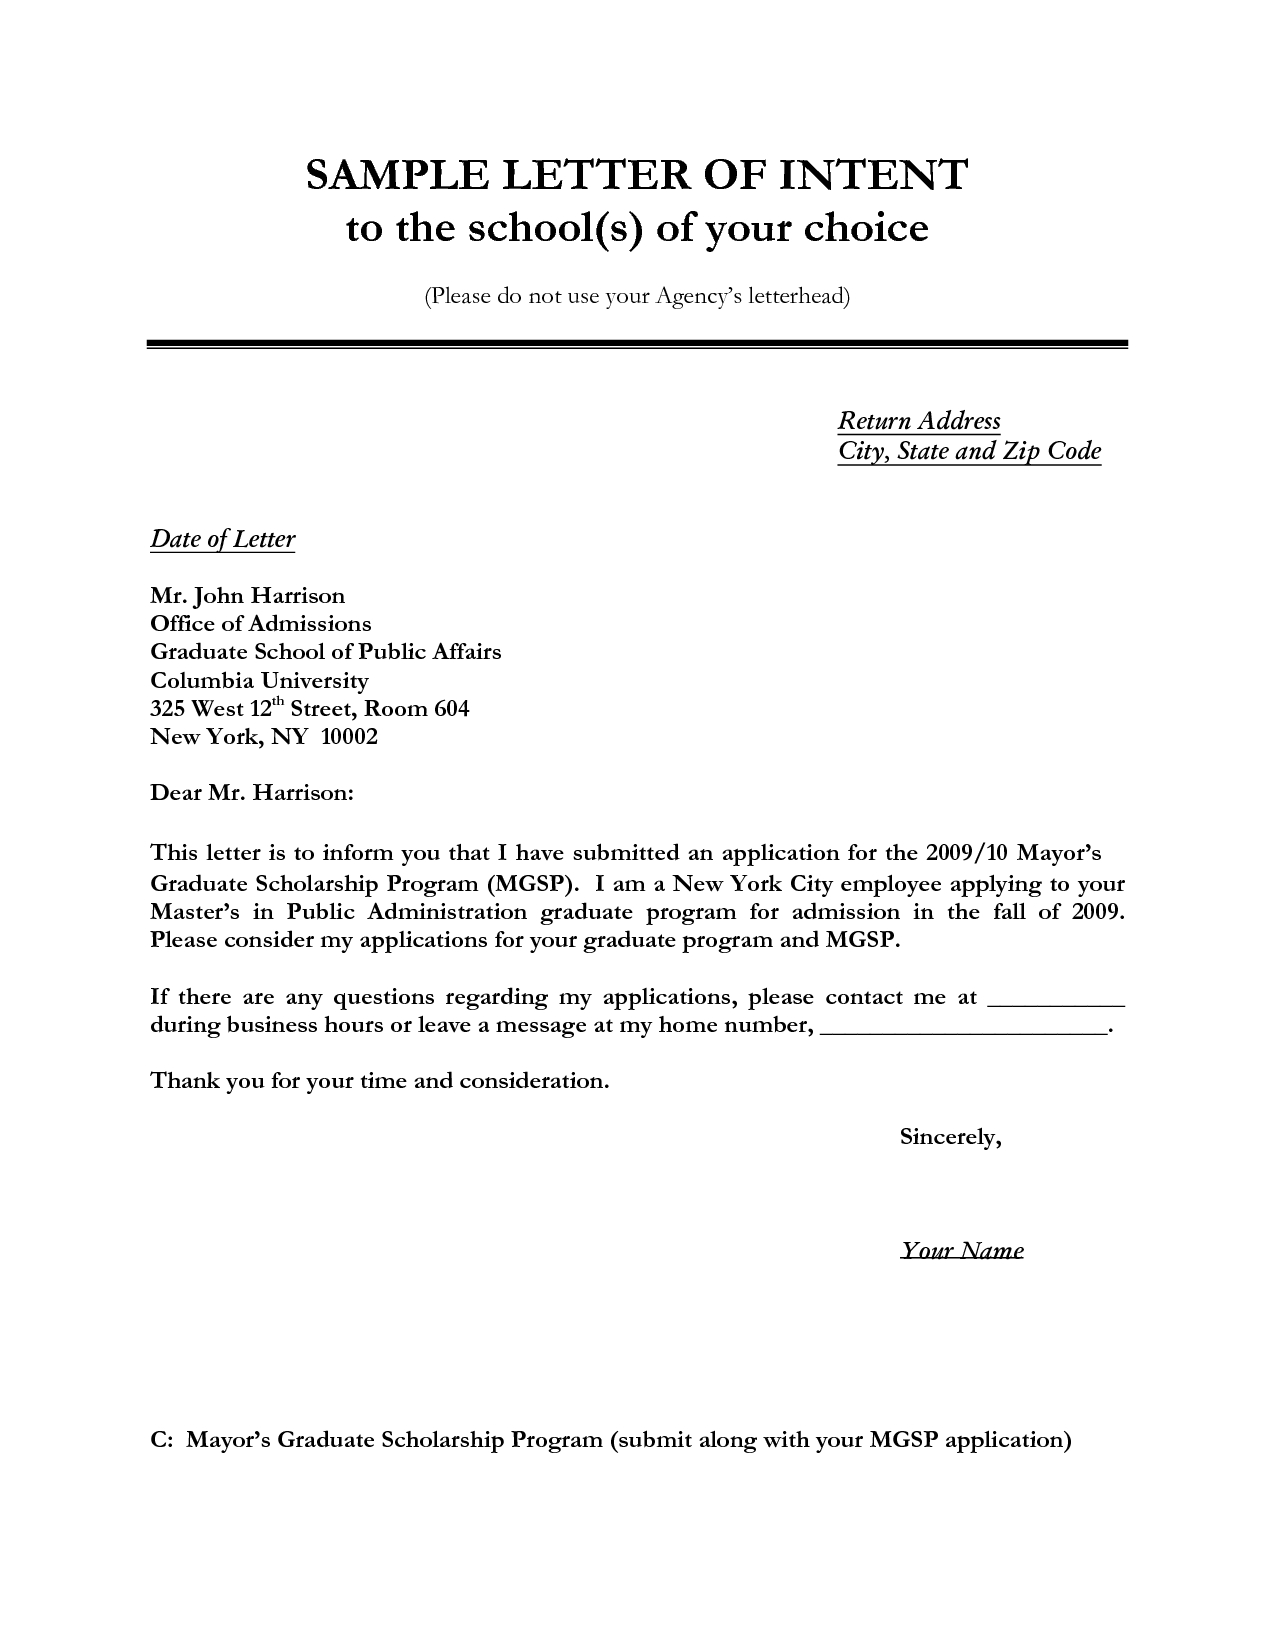 legal letter of intent template example-Letter of intent sample 16-d